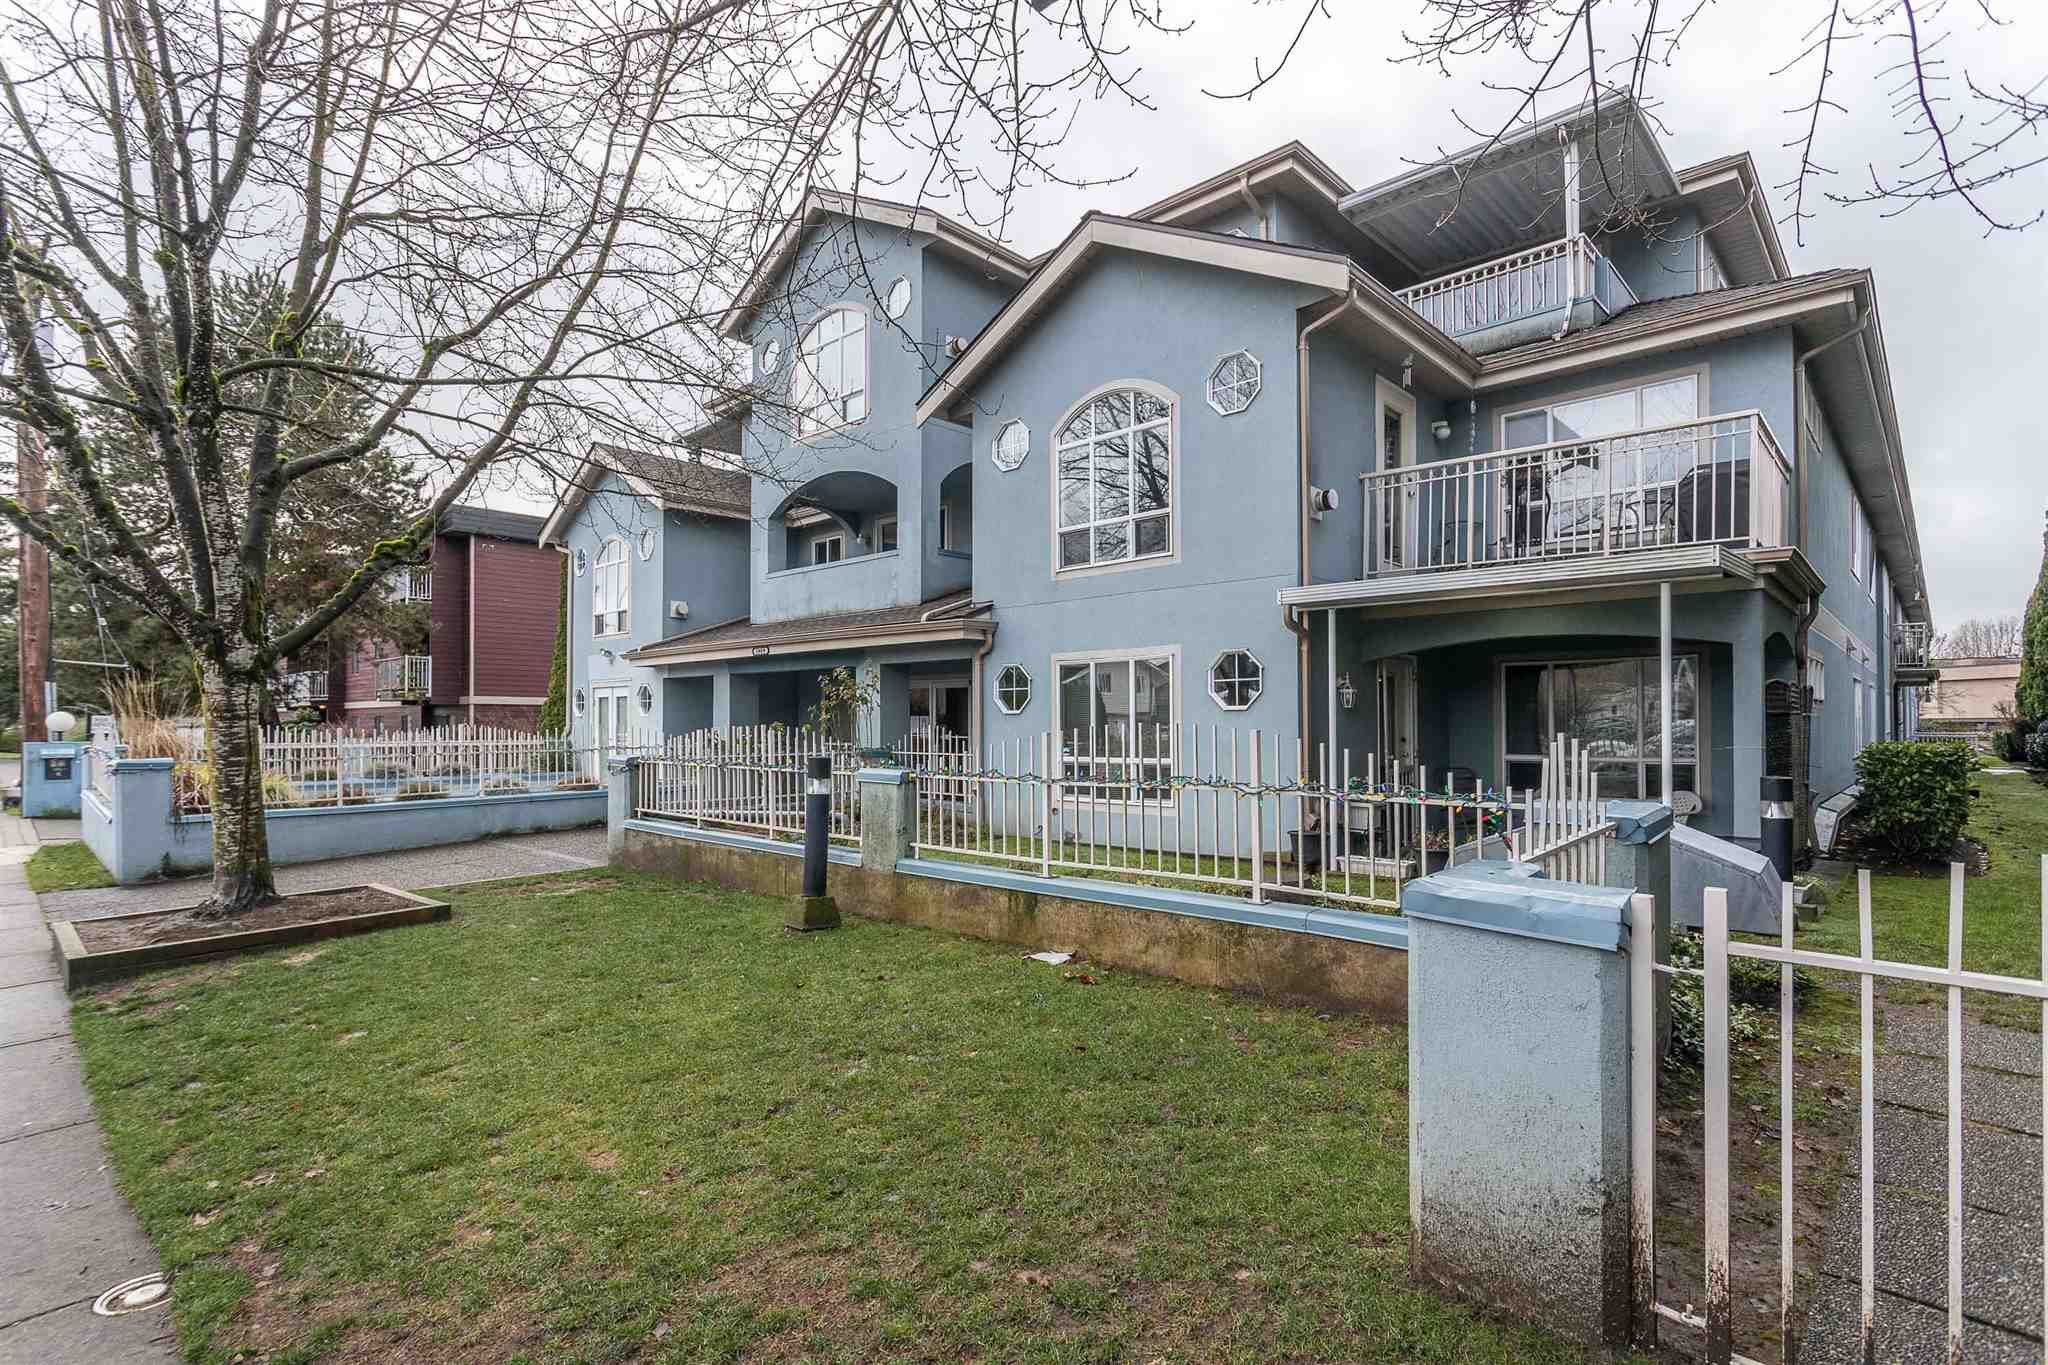 """Main Photo: 107 5909 177B Street in Surrey: Cloverdale BC Condo for sale in """"Carridge Court"""" (Cloverdale)  : MLS®# R2602969"""